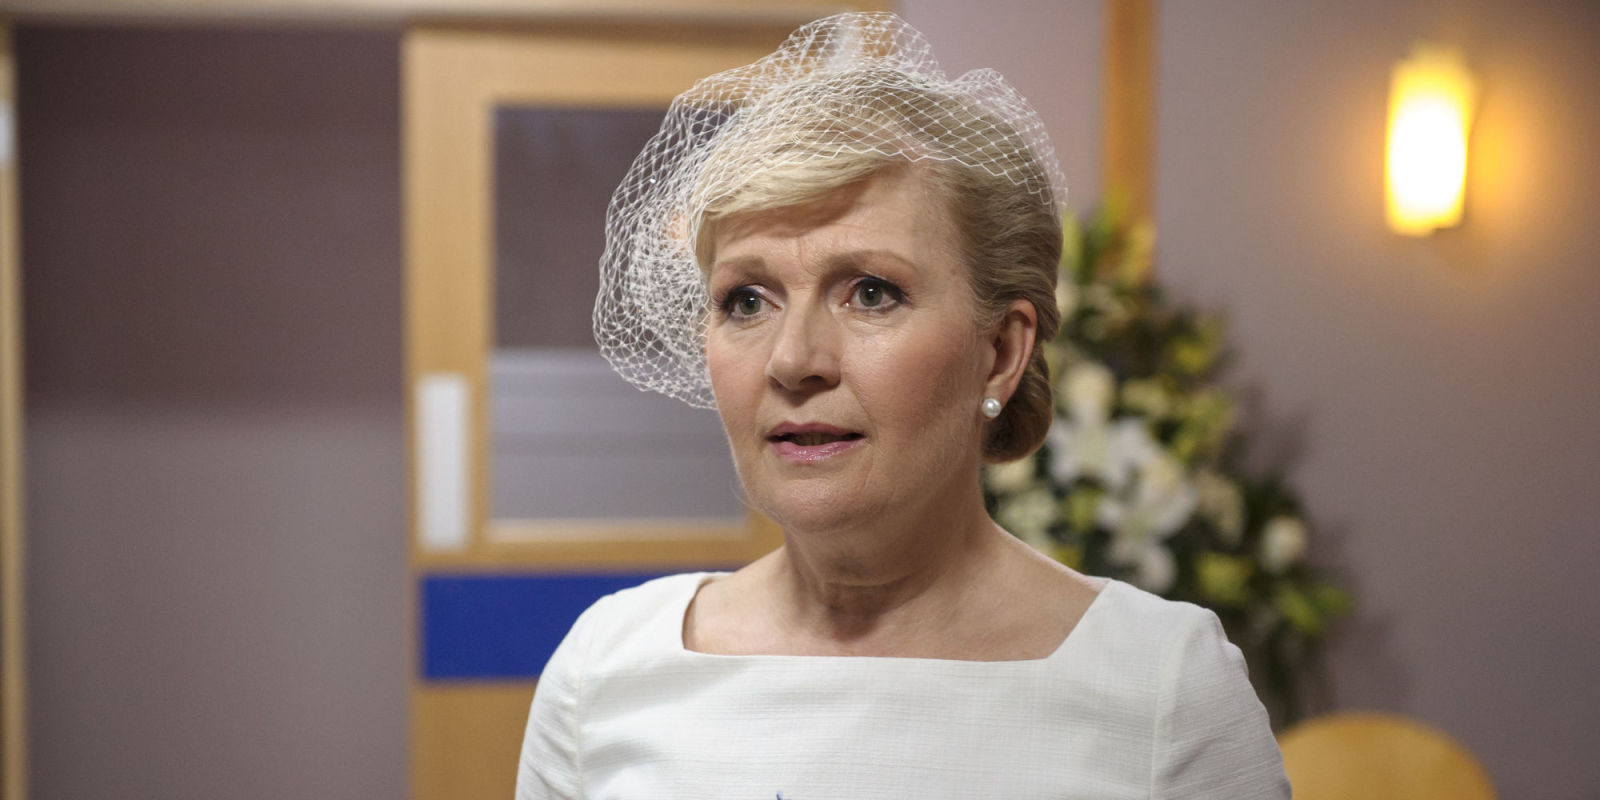 Casualty Star Cathy Shipton Had Some Initial Concerns